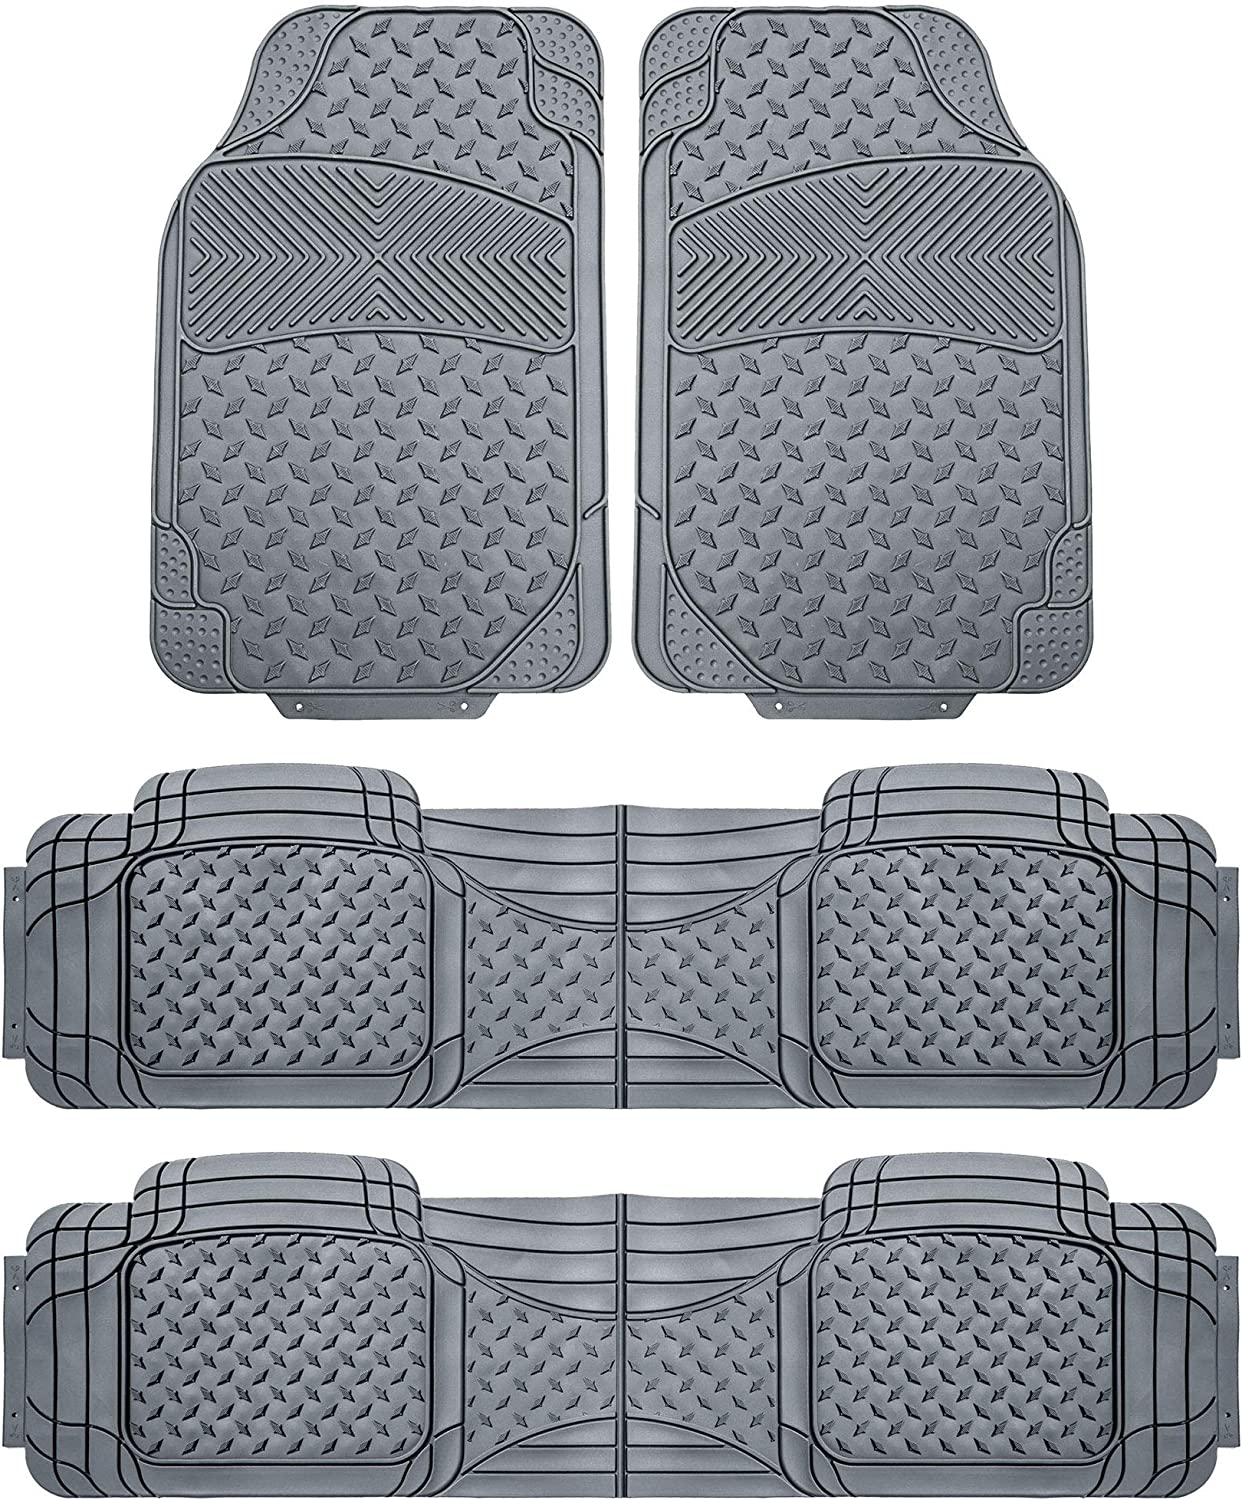 FH Group F11307GRAY-3ROW Gray- 3 Row F11307GRAY Trim to Fit Weather SUV Floor Mats